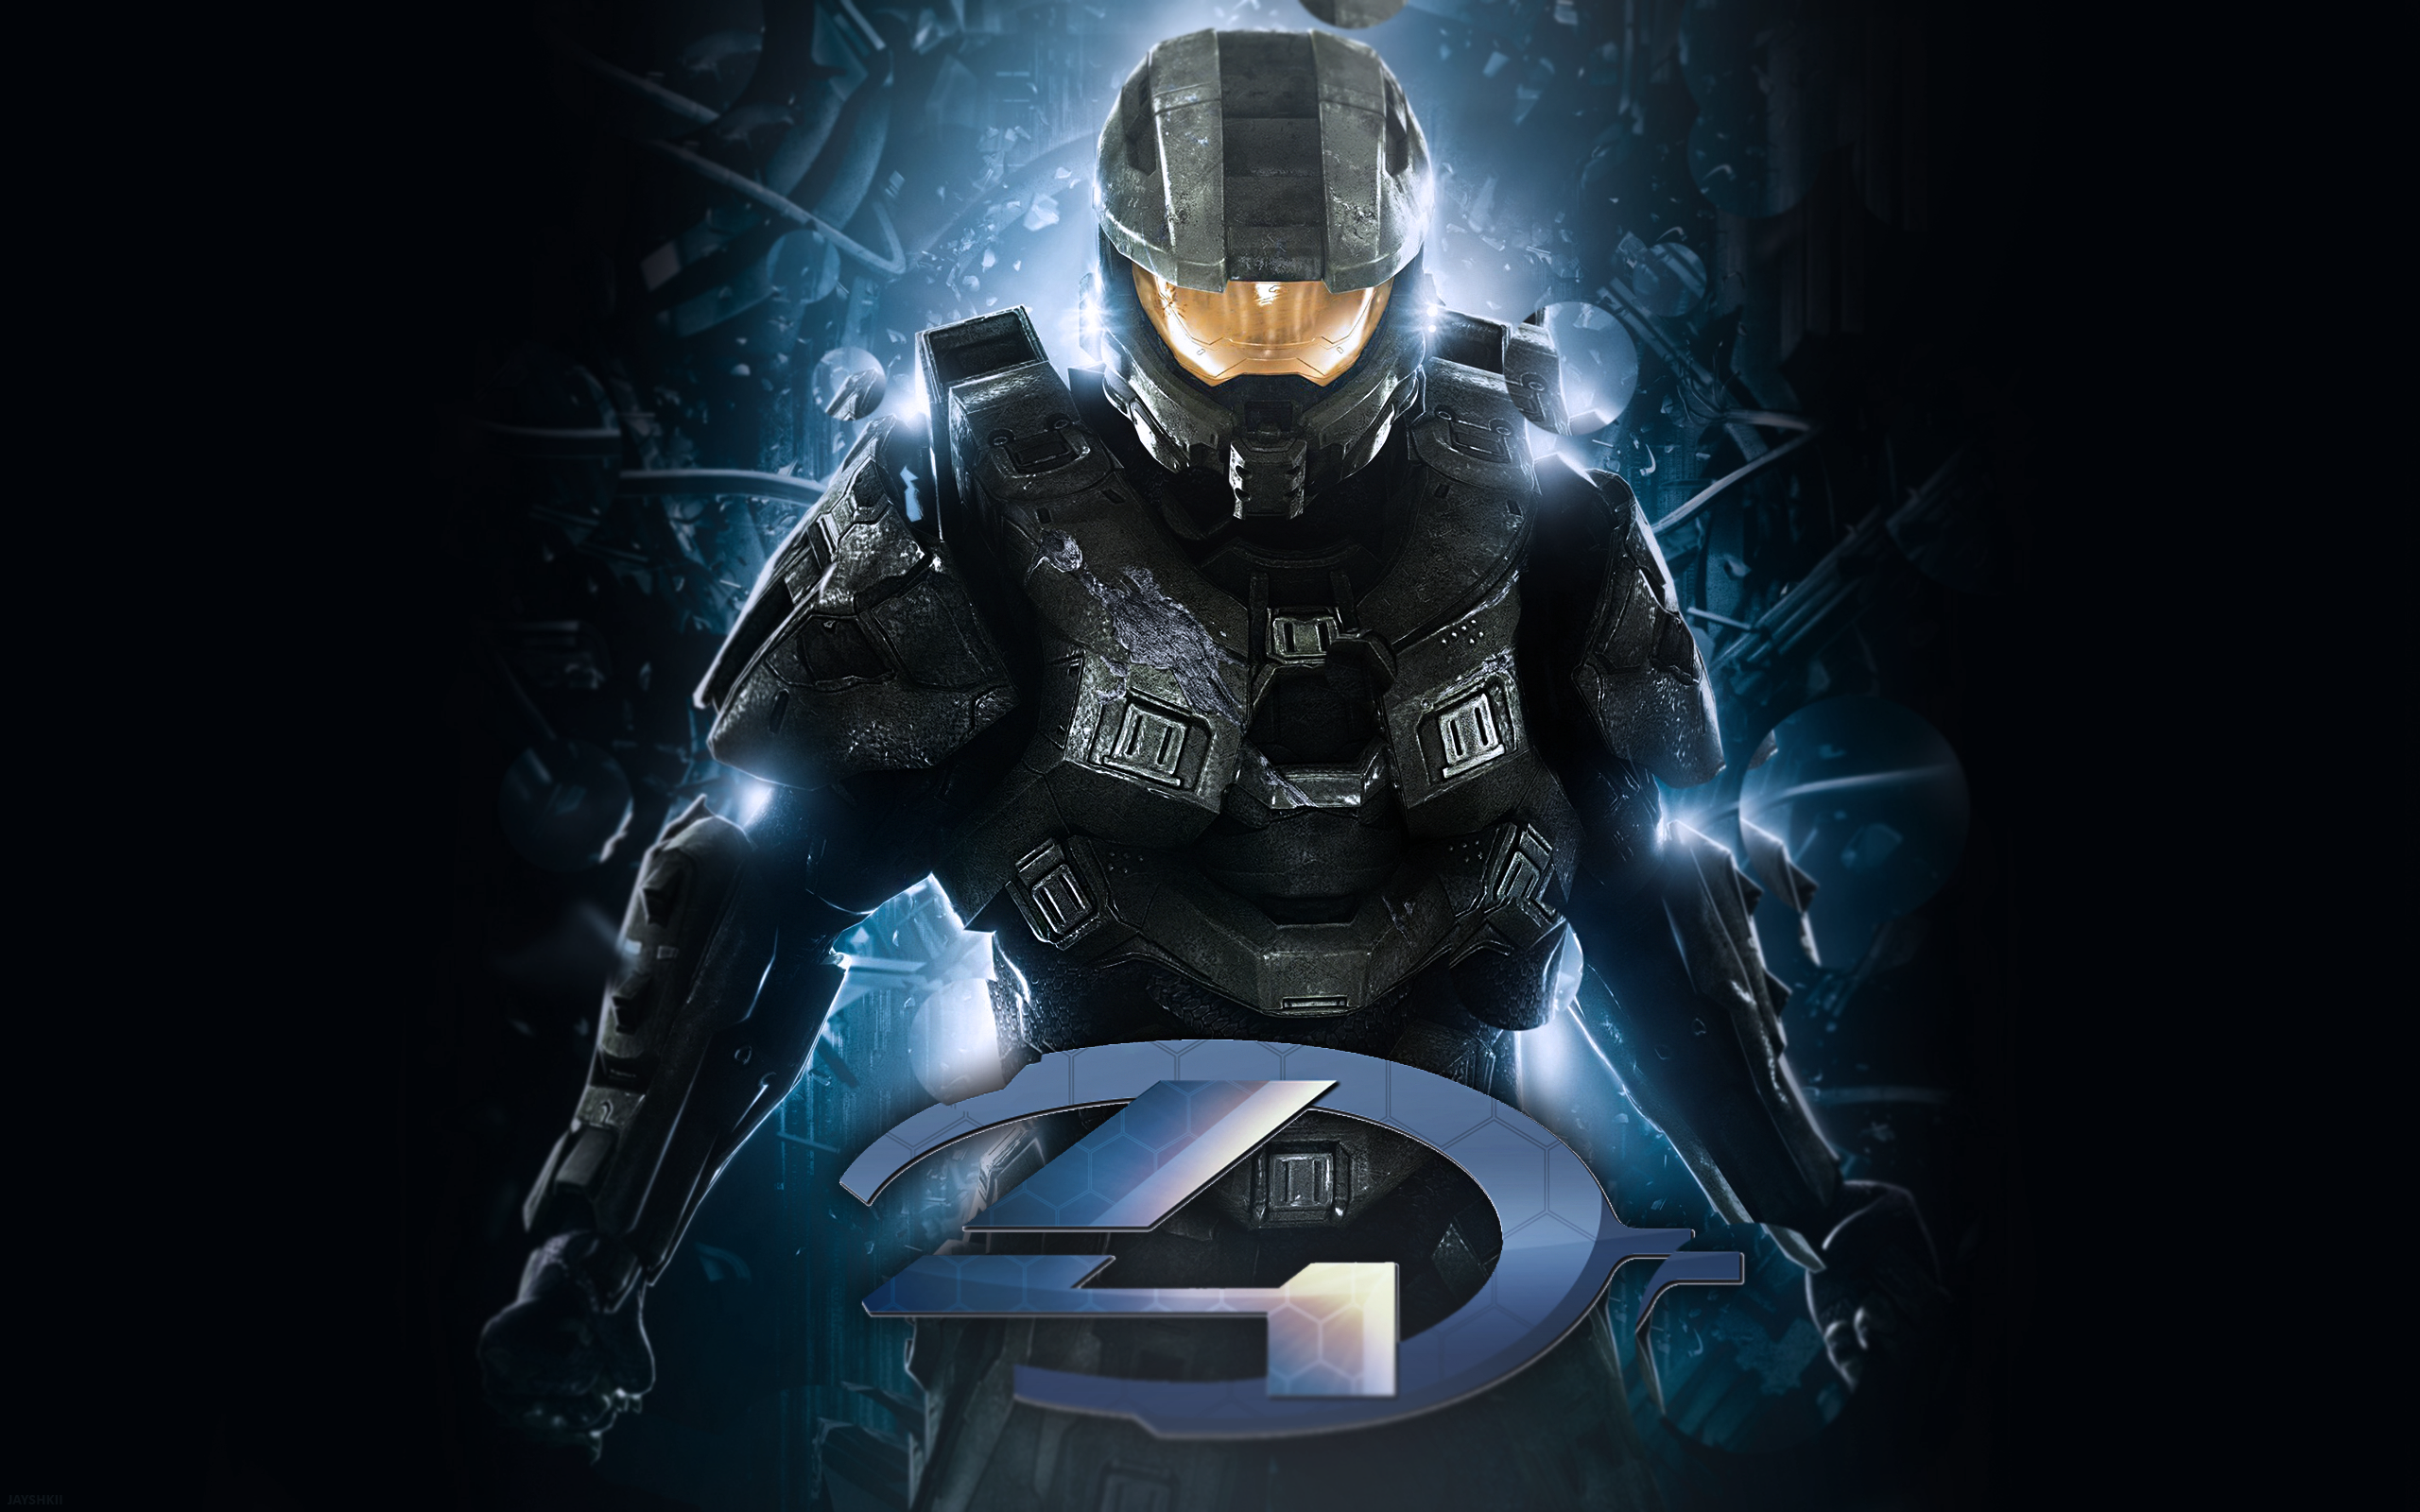 halo 4 wallpaper by cloud 9 design customization wallpaper other 2012 2560x1600